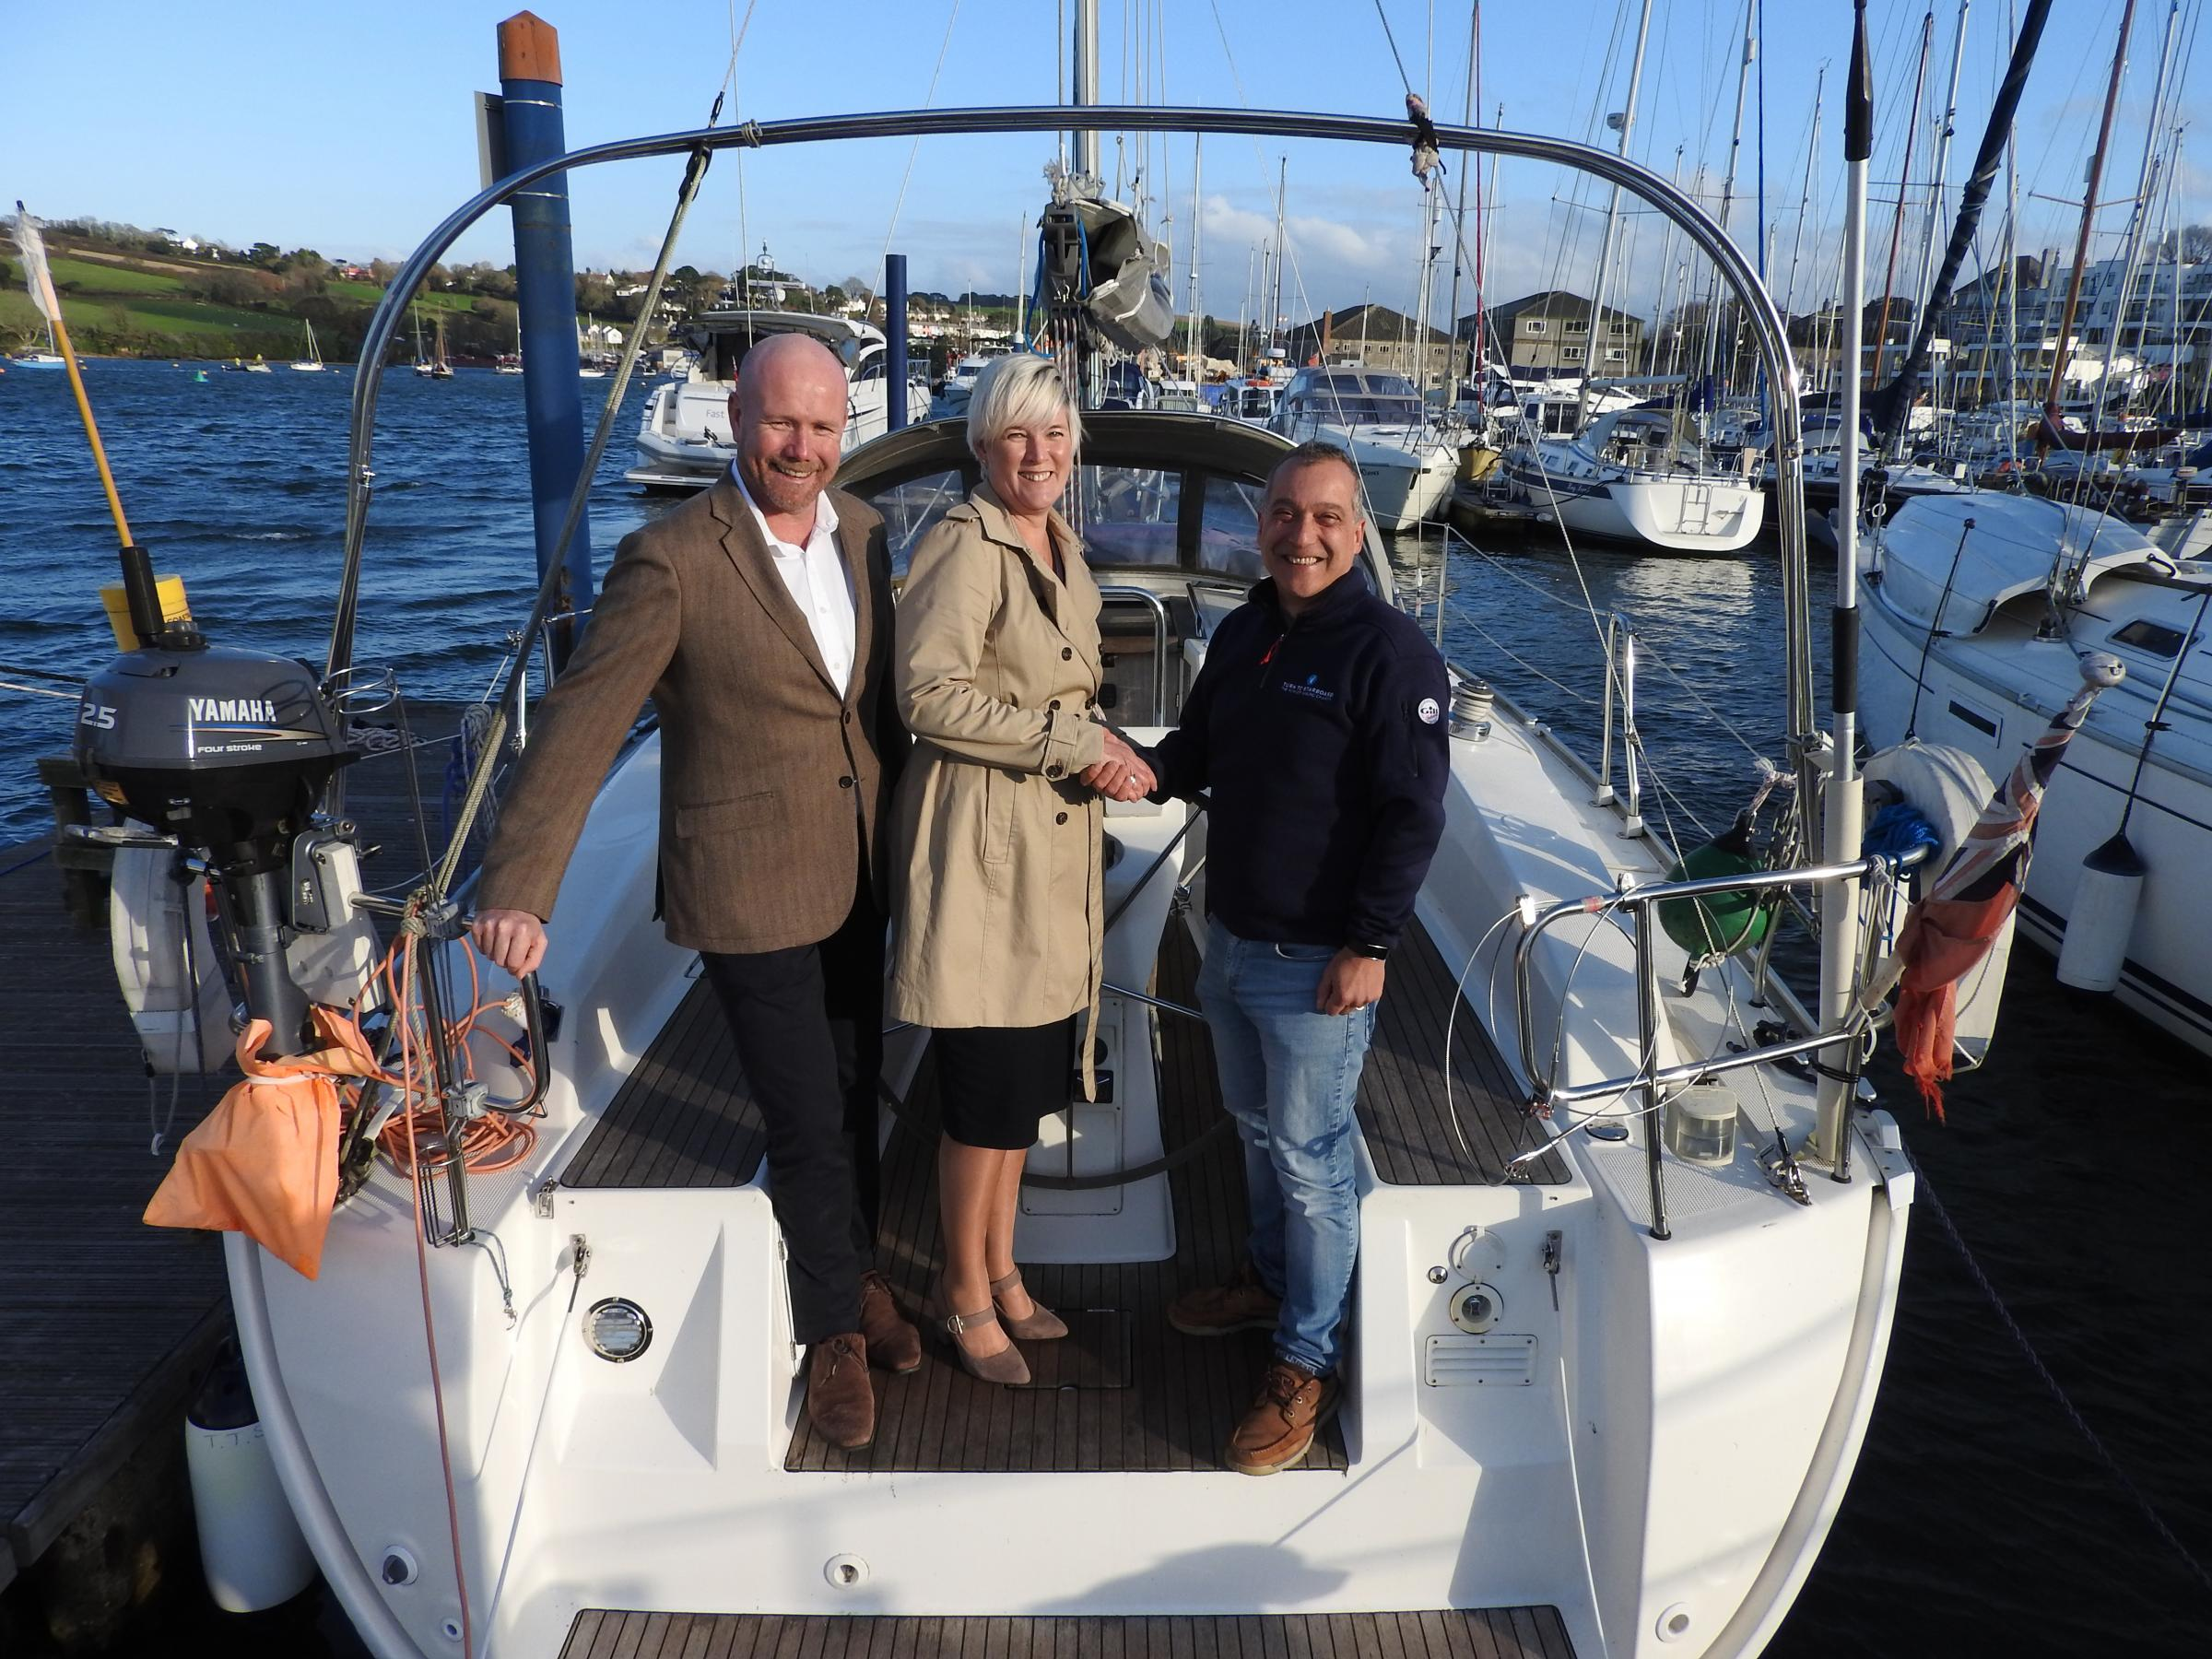 Left to right: Martin & Co owners Jon and Felicia Sampson with Turn to Starboard CEO Shaun Pascoe